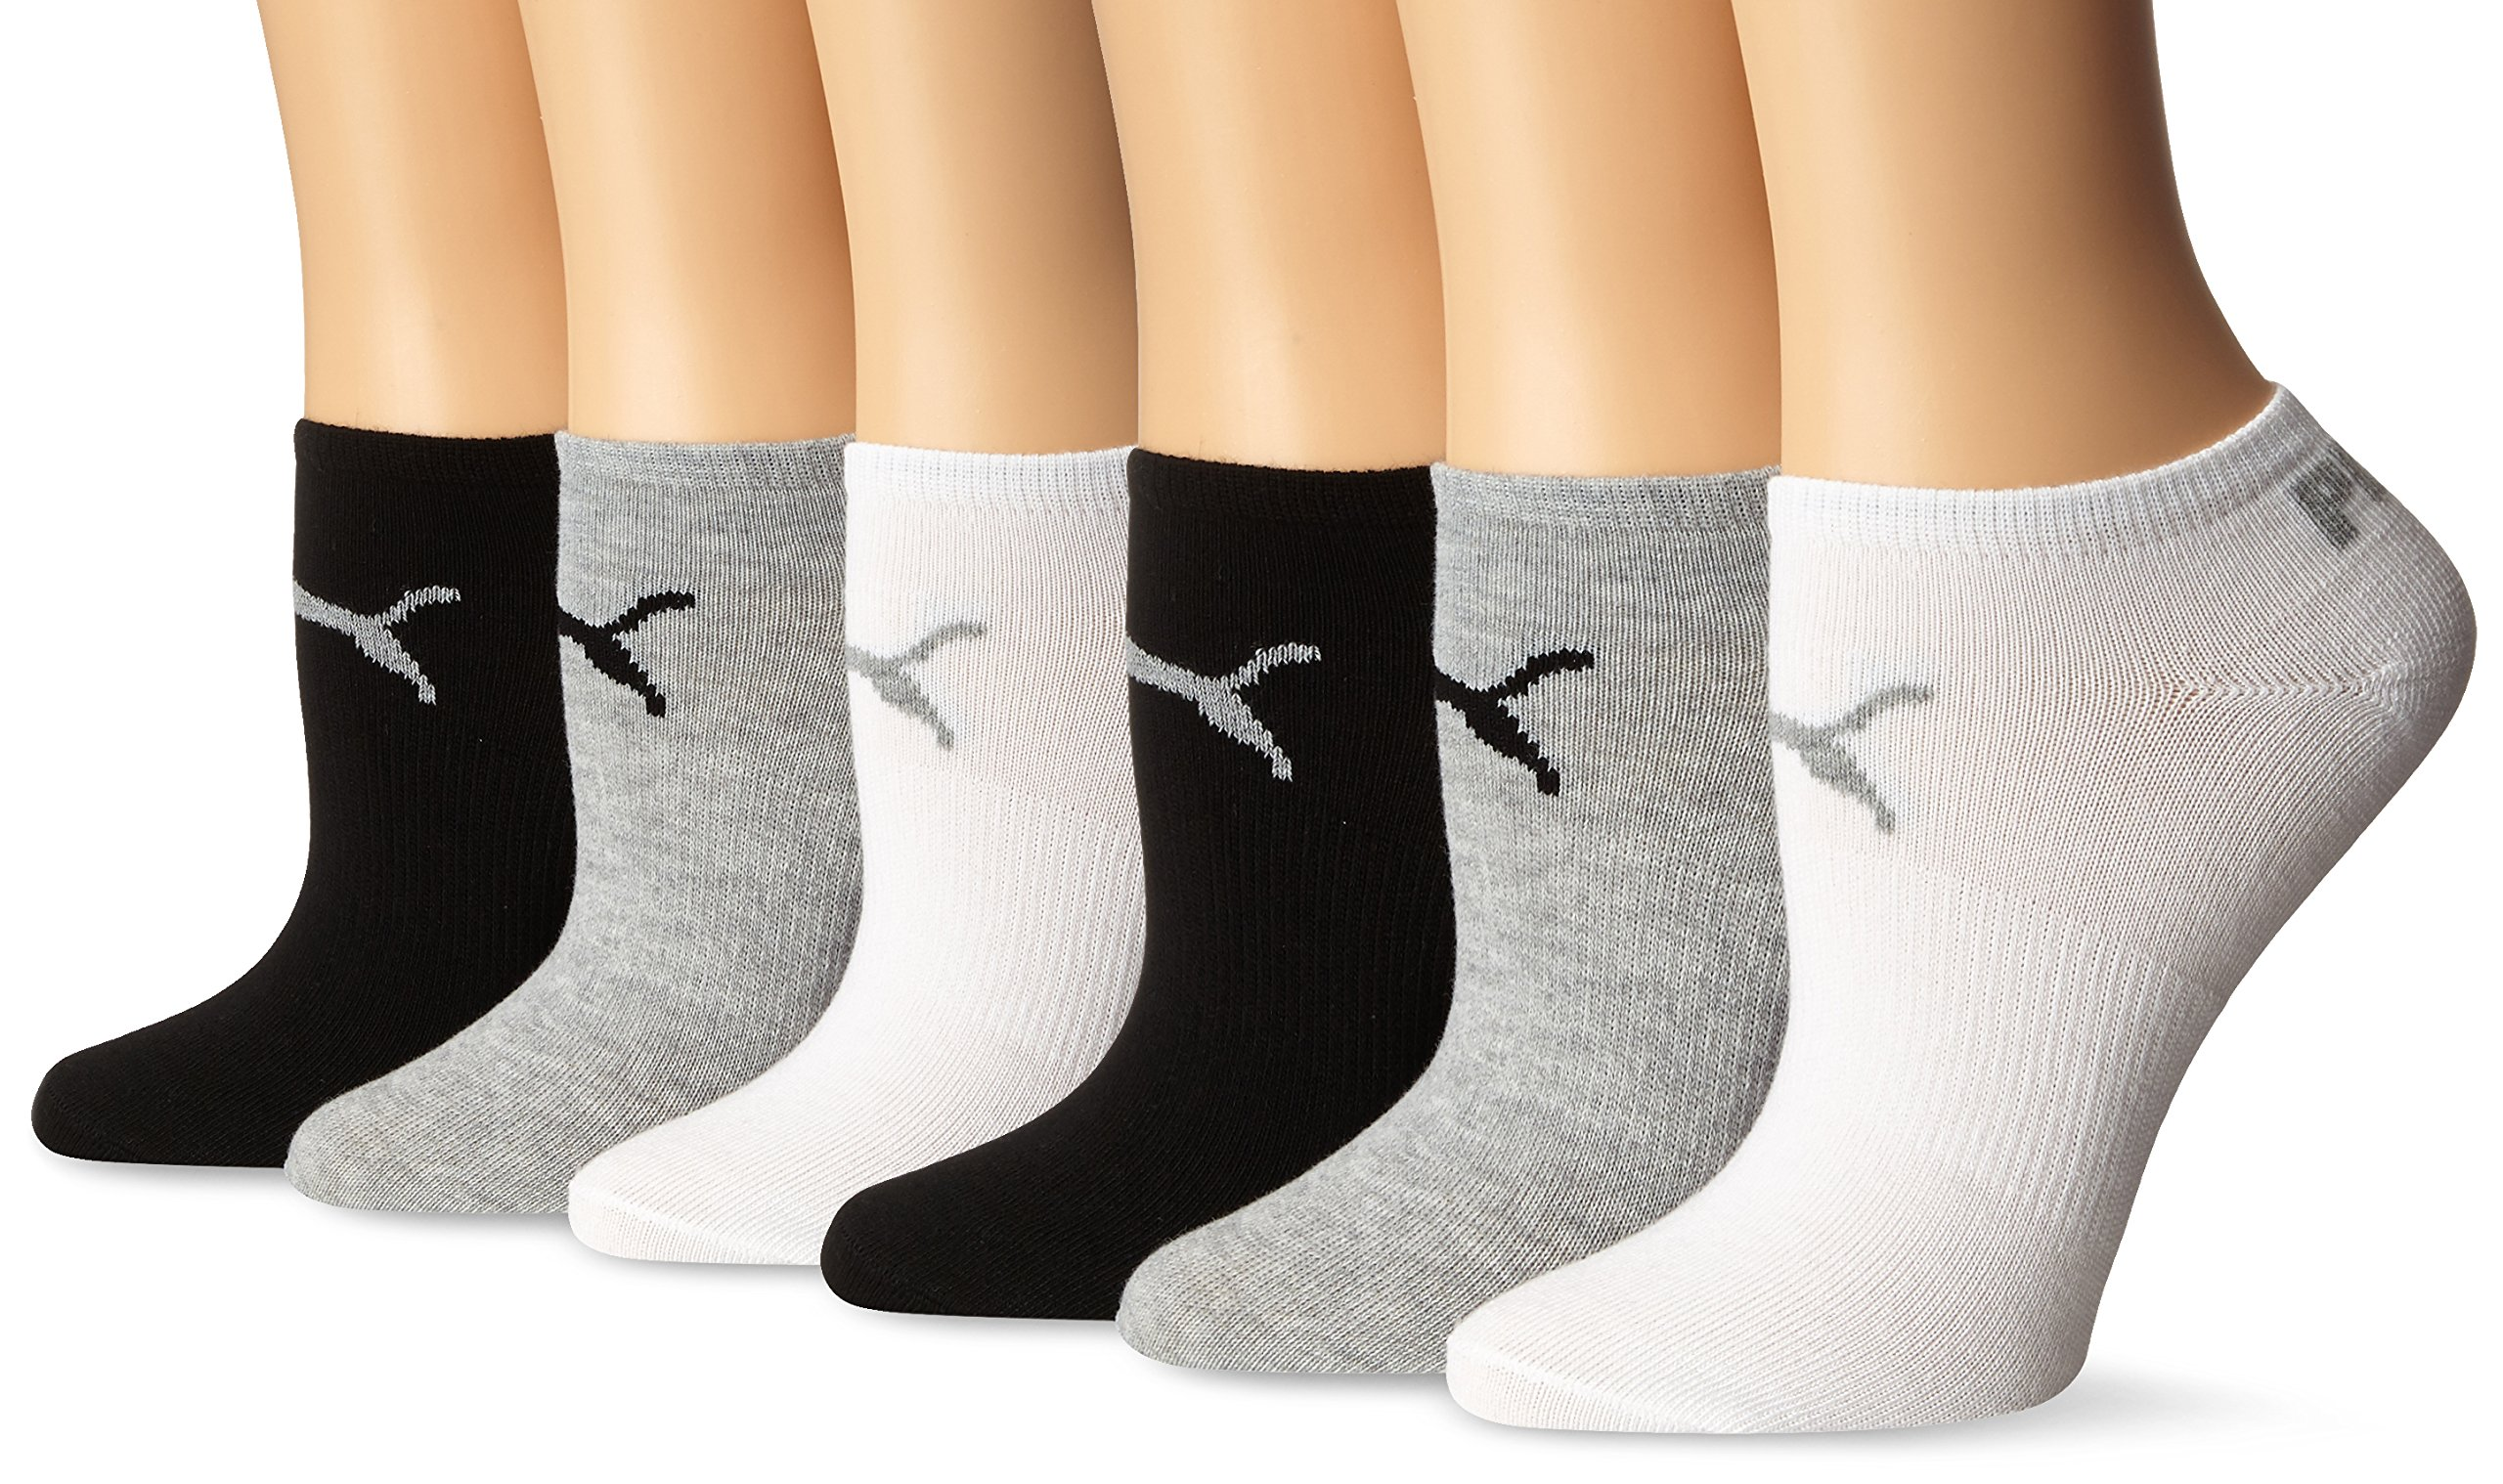 Puma Women's Non Terry No Show Low Cut Athletic Sport Sock 6-Pack,Grey/White/Black,9-11